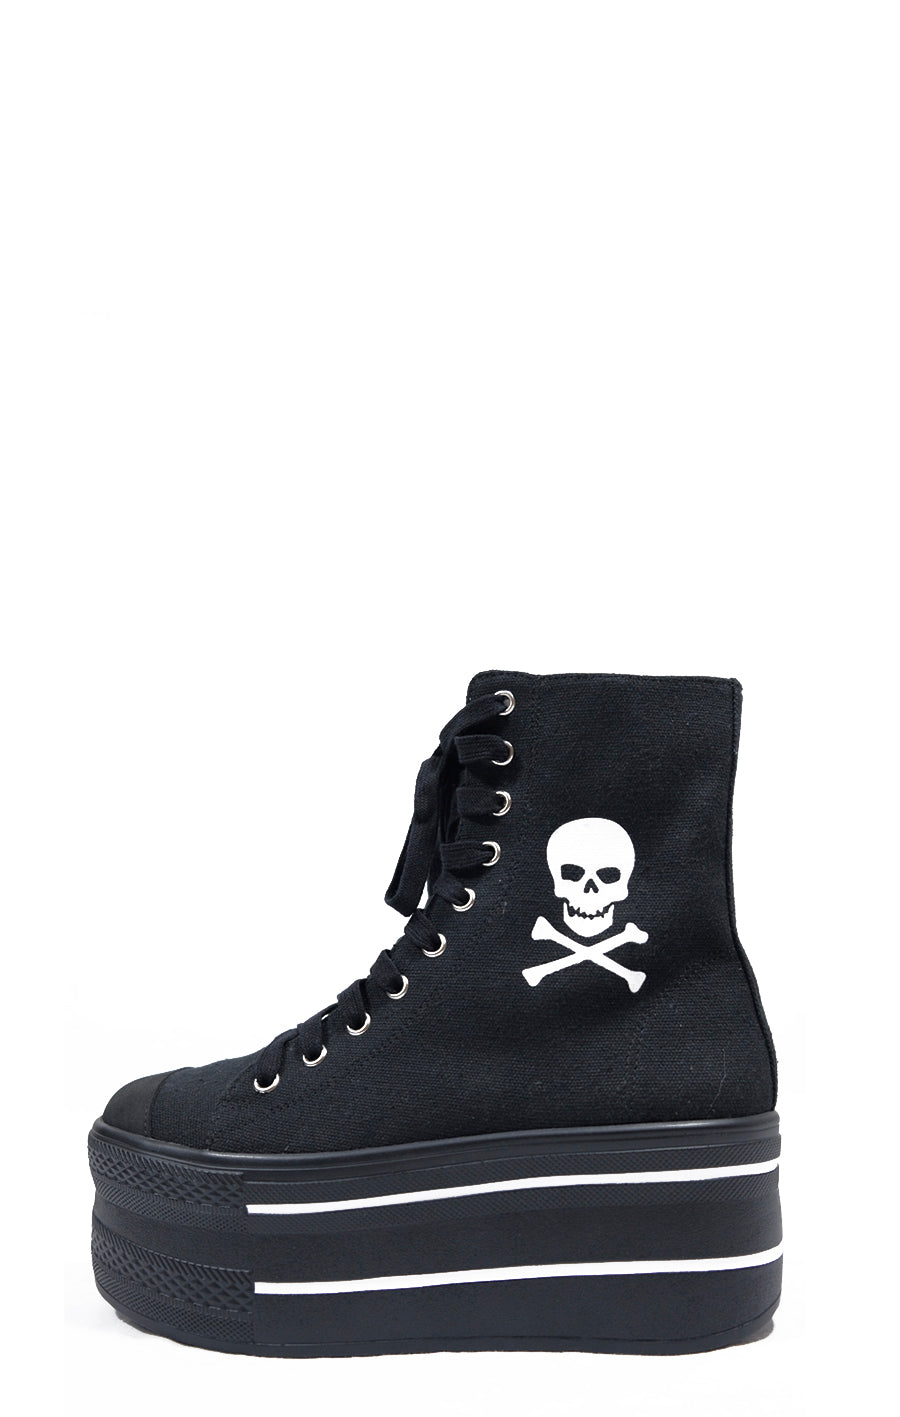 Skelly Hi-Top Platform Sneaker